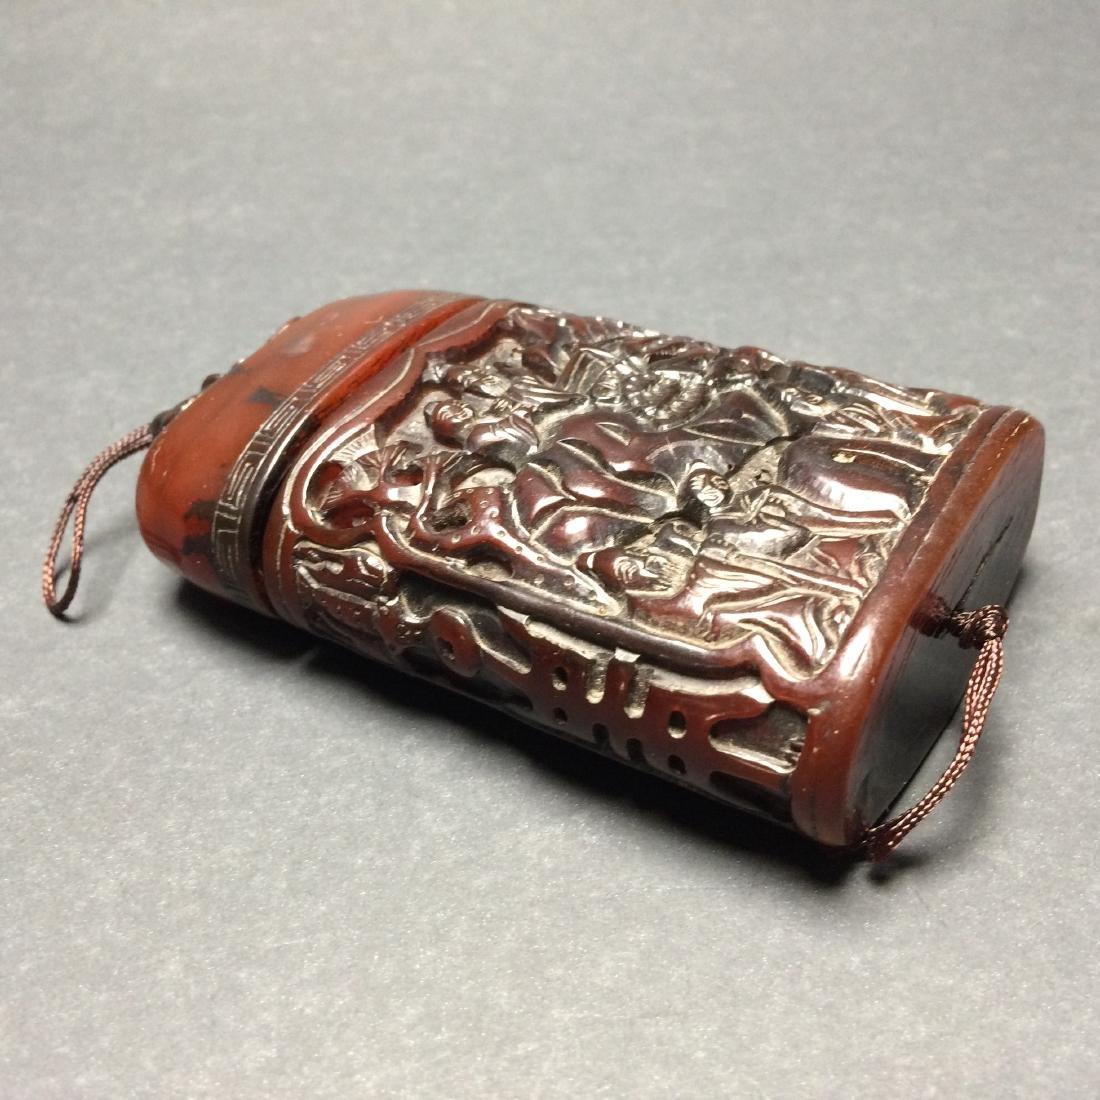 Chinese Old Style Carved Bison Horn Box w Lid - 4